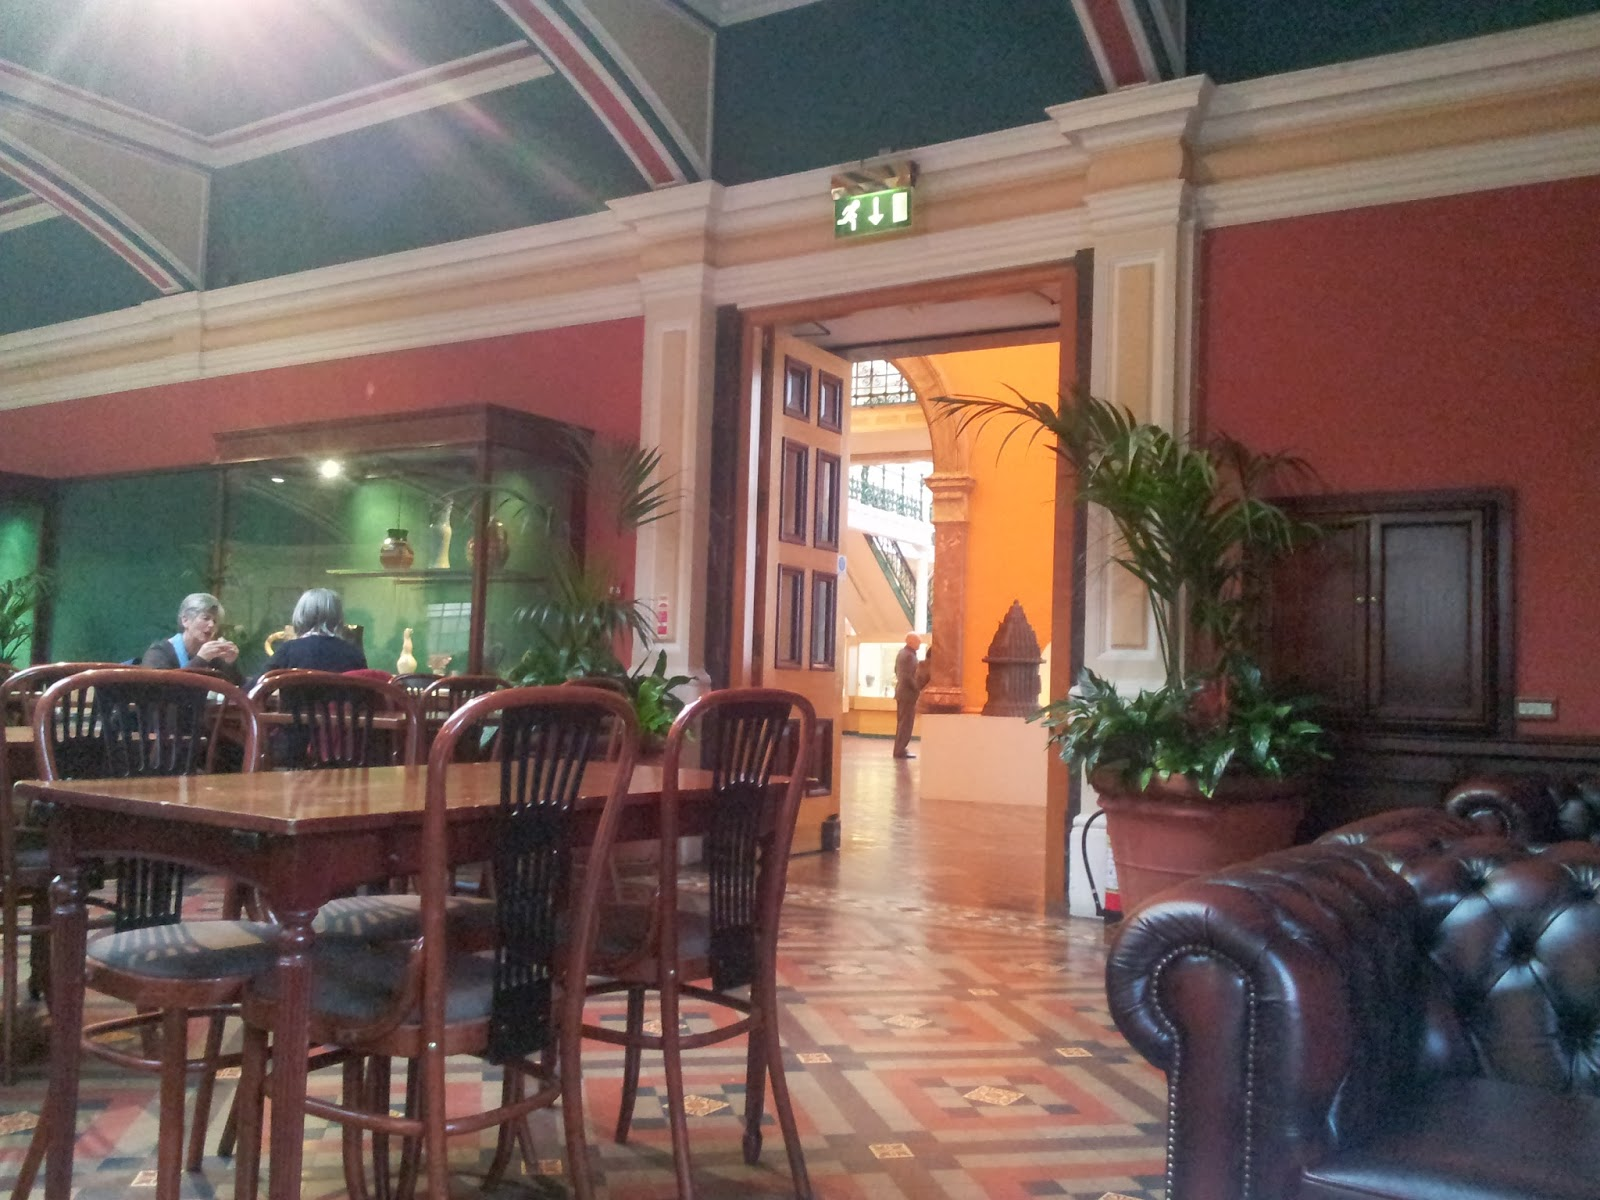 Tea rooms in Birmingham Museum and Art Gallery